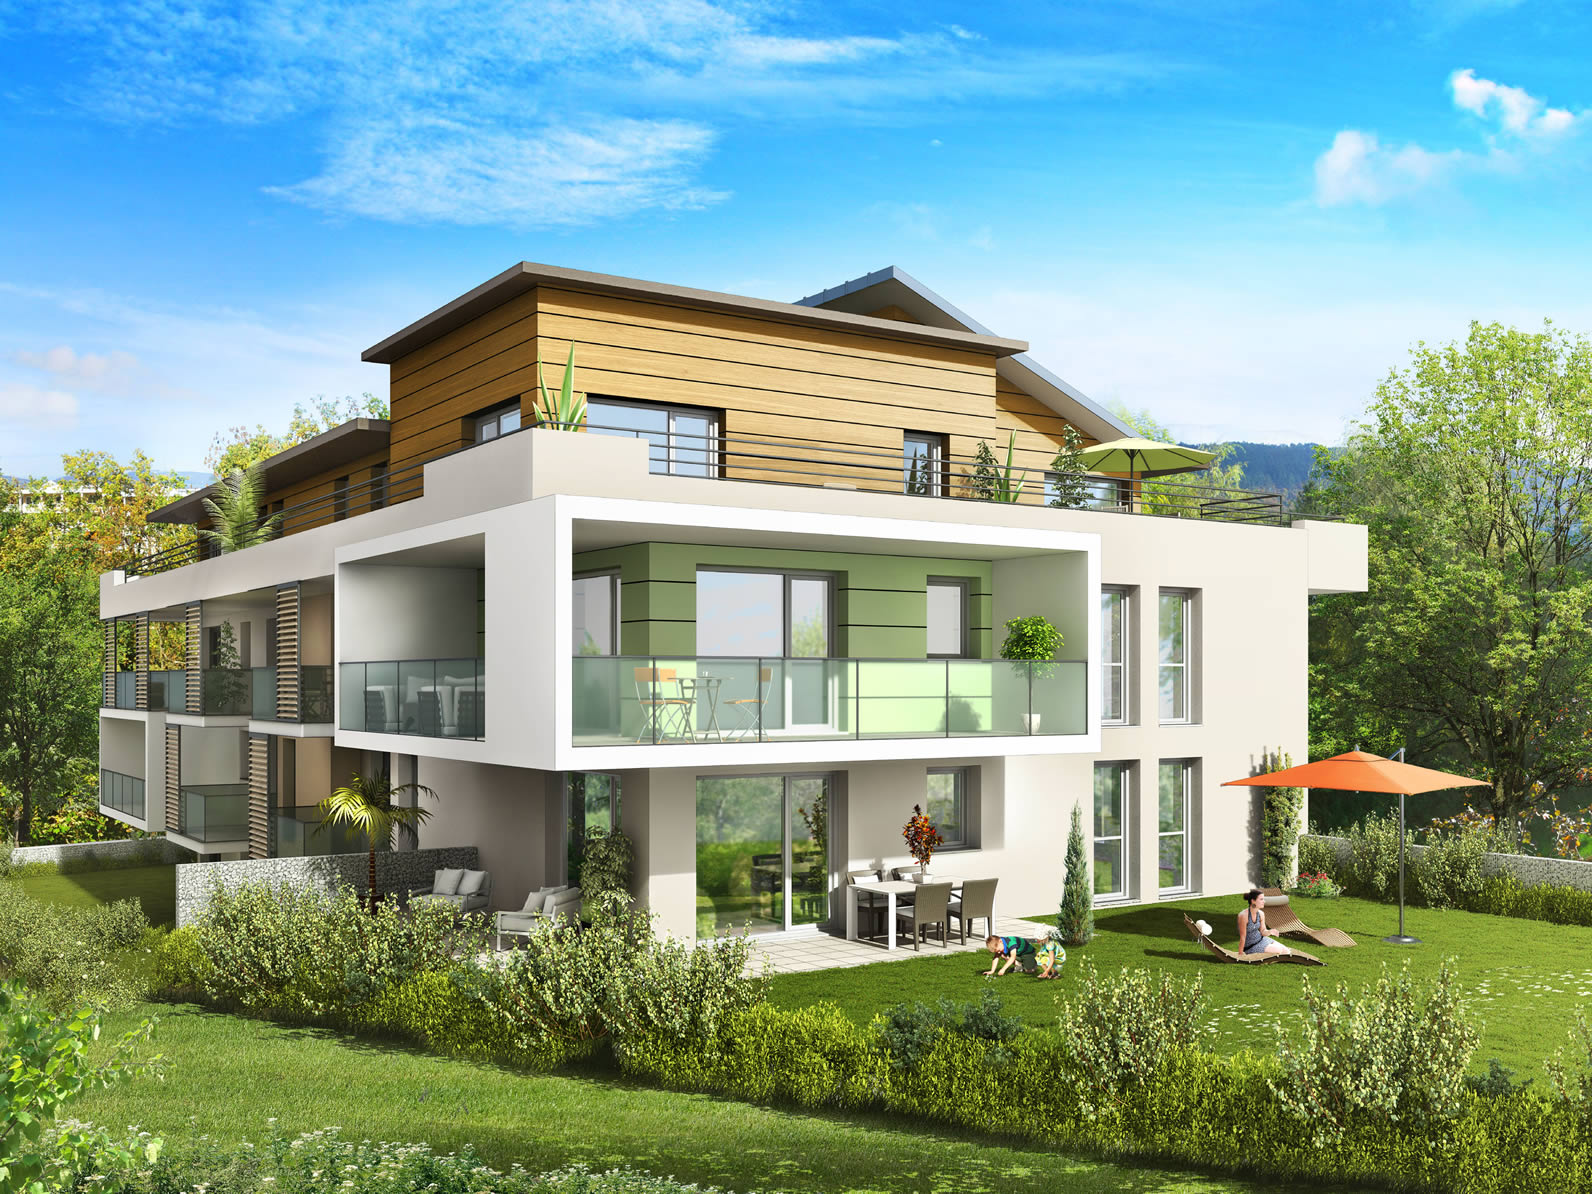 Agence immobili re le home tassin la demi lune for Agence immobiliere appartement neuf